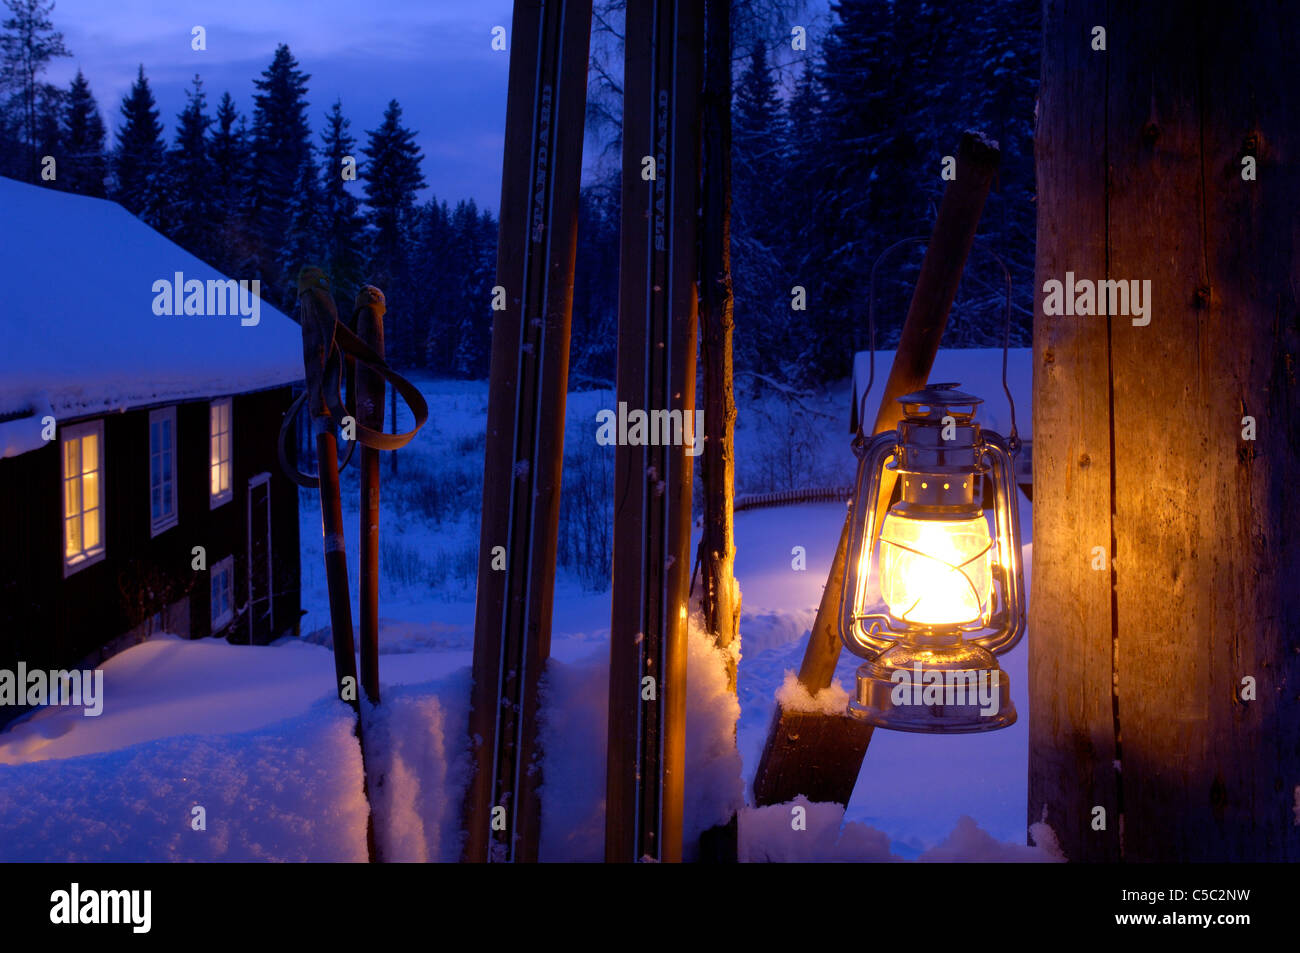 Close-up of lit lantern at the gatepost in the snow - Stock Image